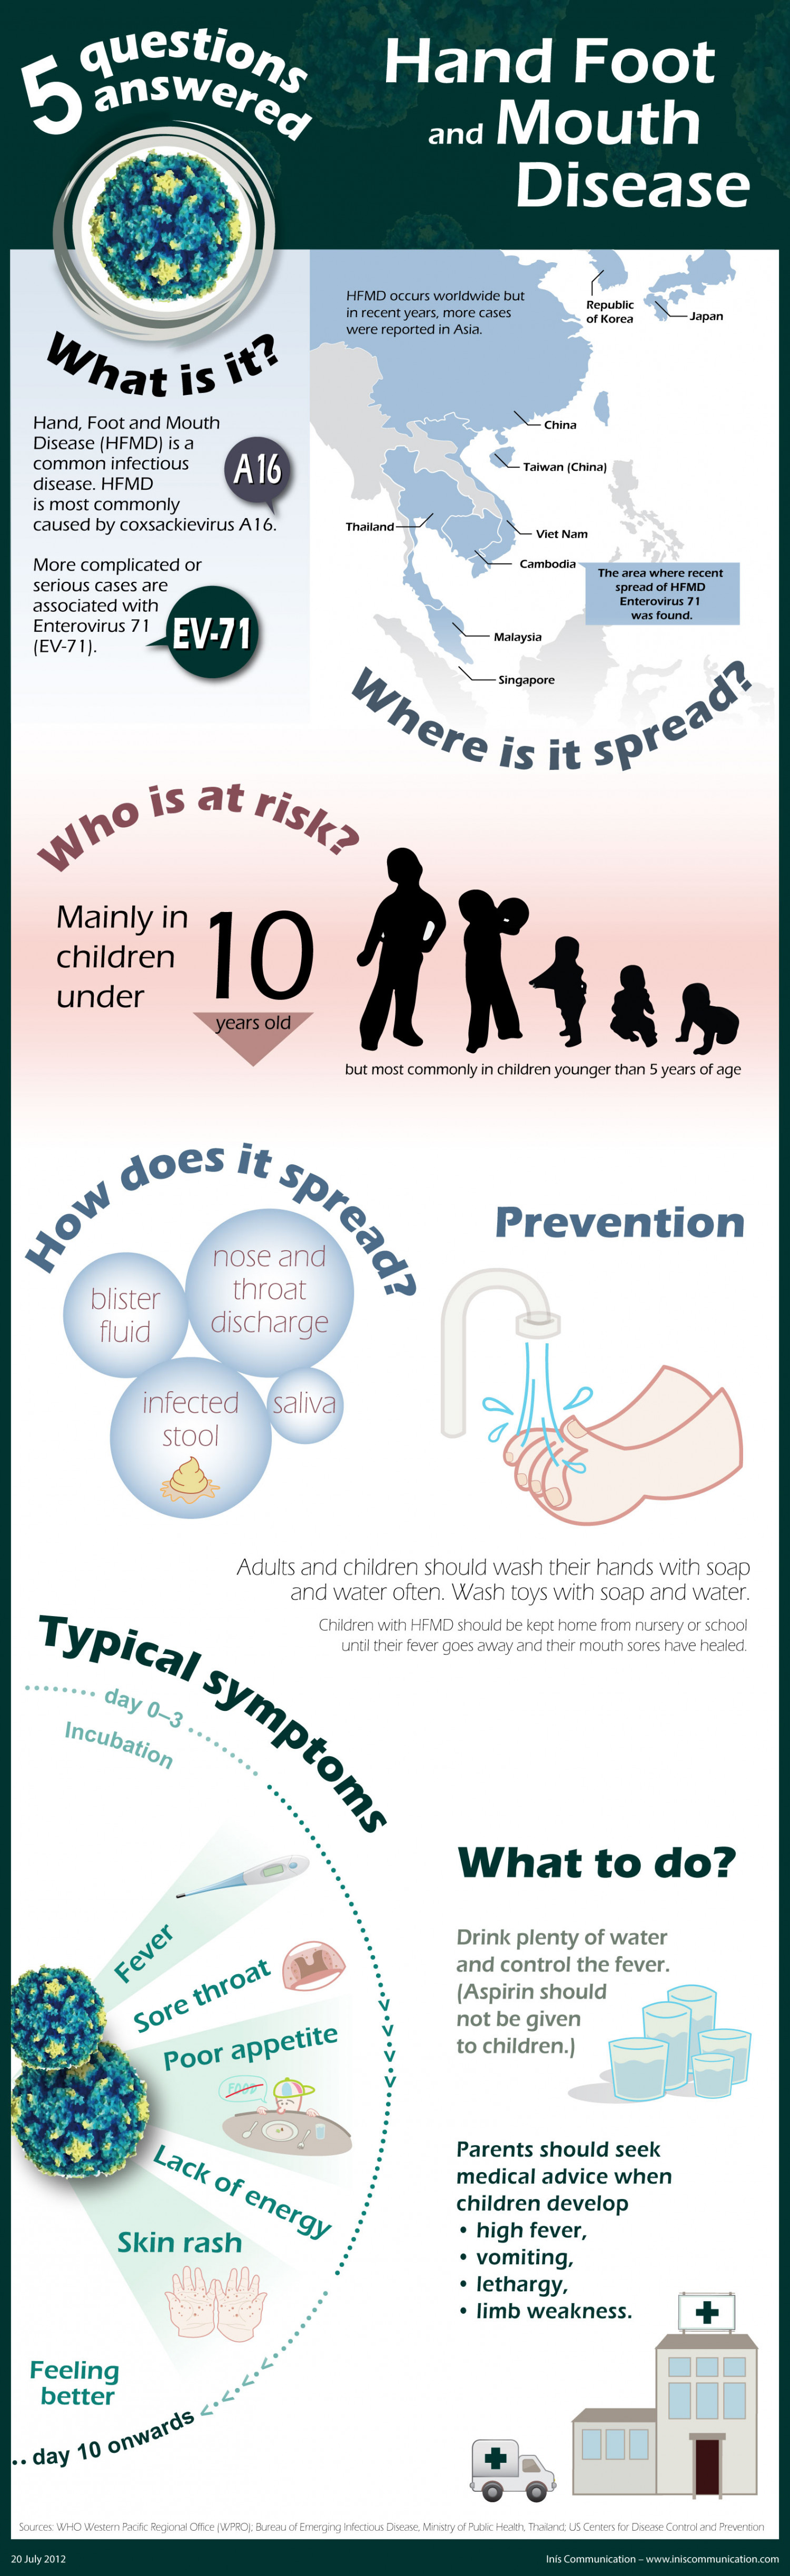 Hand Foot and Mouth Disease: Five Questions Answered Infographic